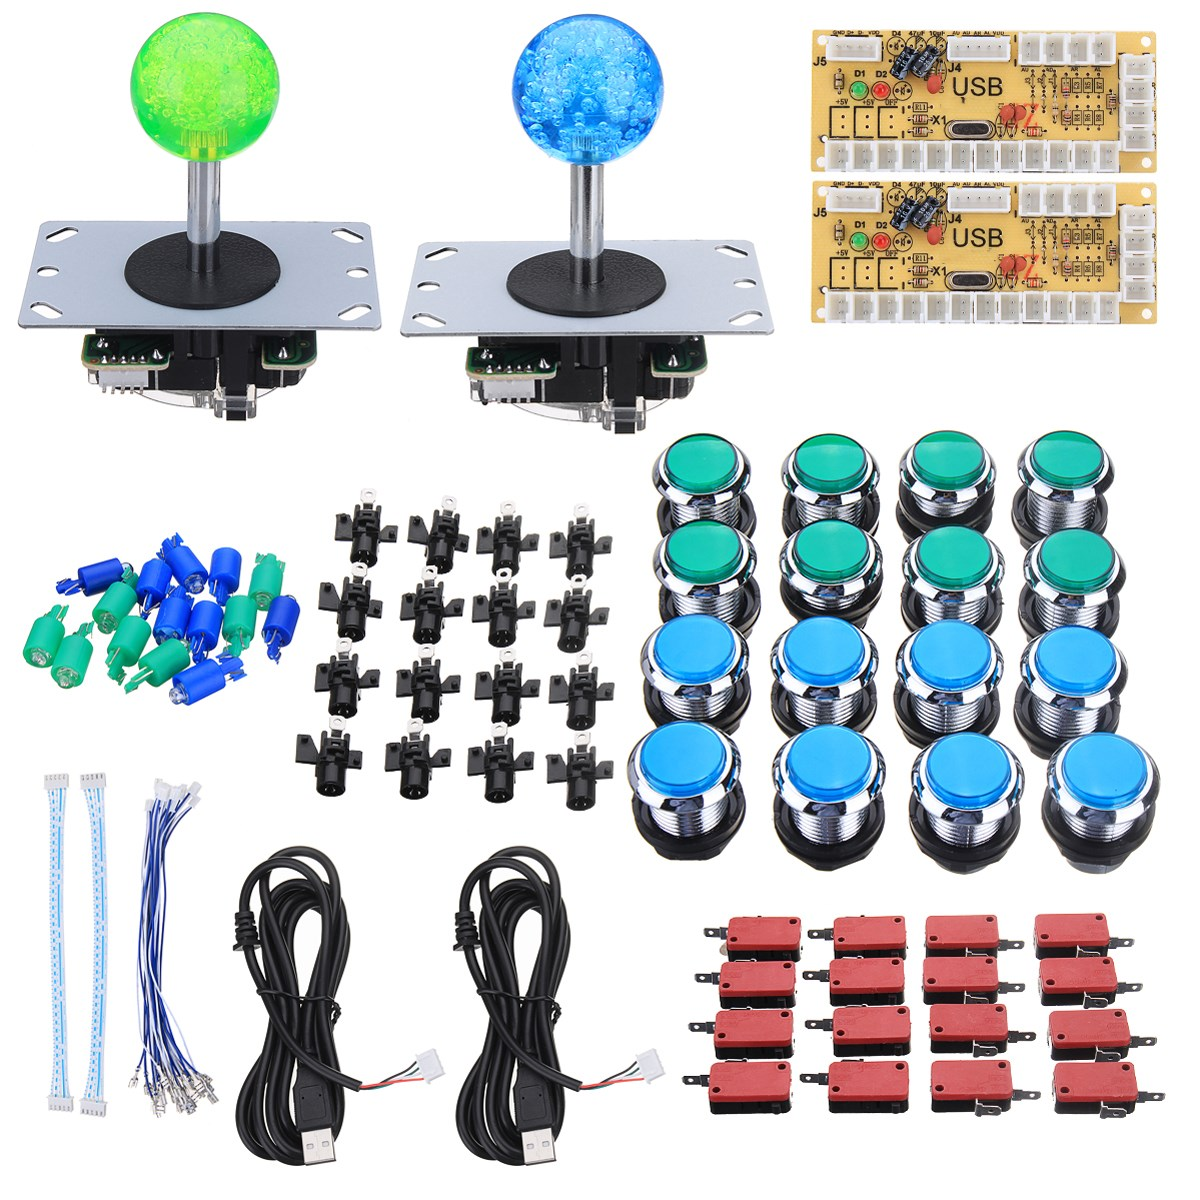 2 Players Arcade Joystick DIY Kits With 2 Zero Delay Keyboard+16 LED Push Buttons+16 Microswitch+Cables Joystick Arcade Set2 Players Arcade Joystick DIY Kits With 2 Zero Delay Keyboard+16 LED Push Buttons+16 Microswitch+Cables Joystick Arcade Set